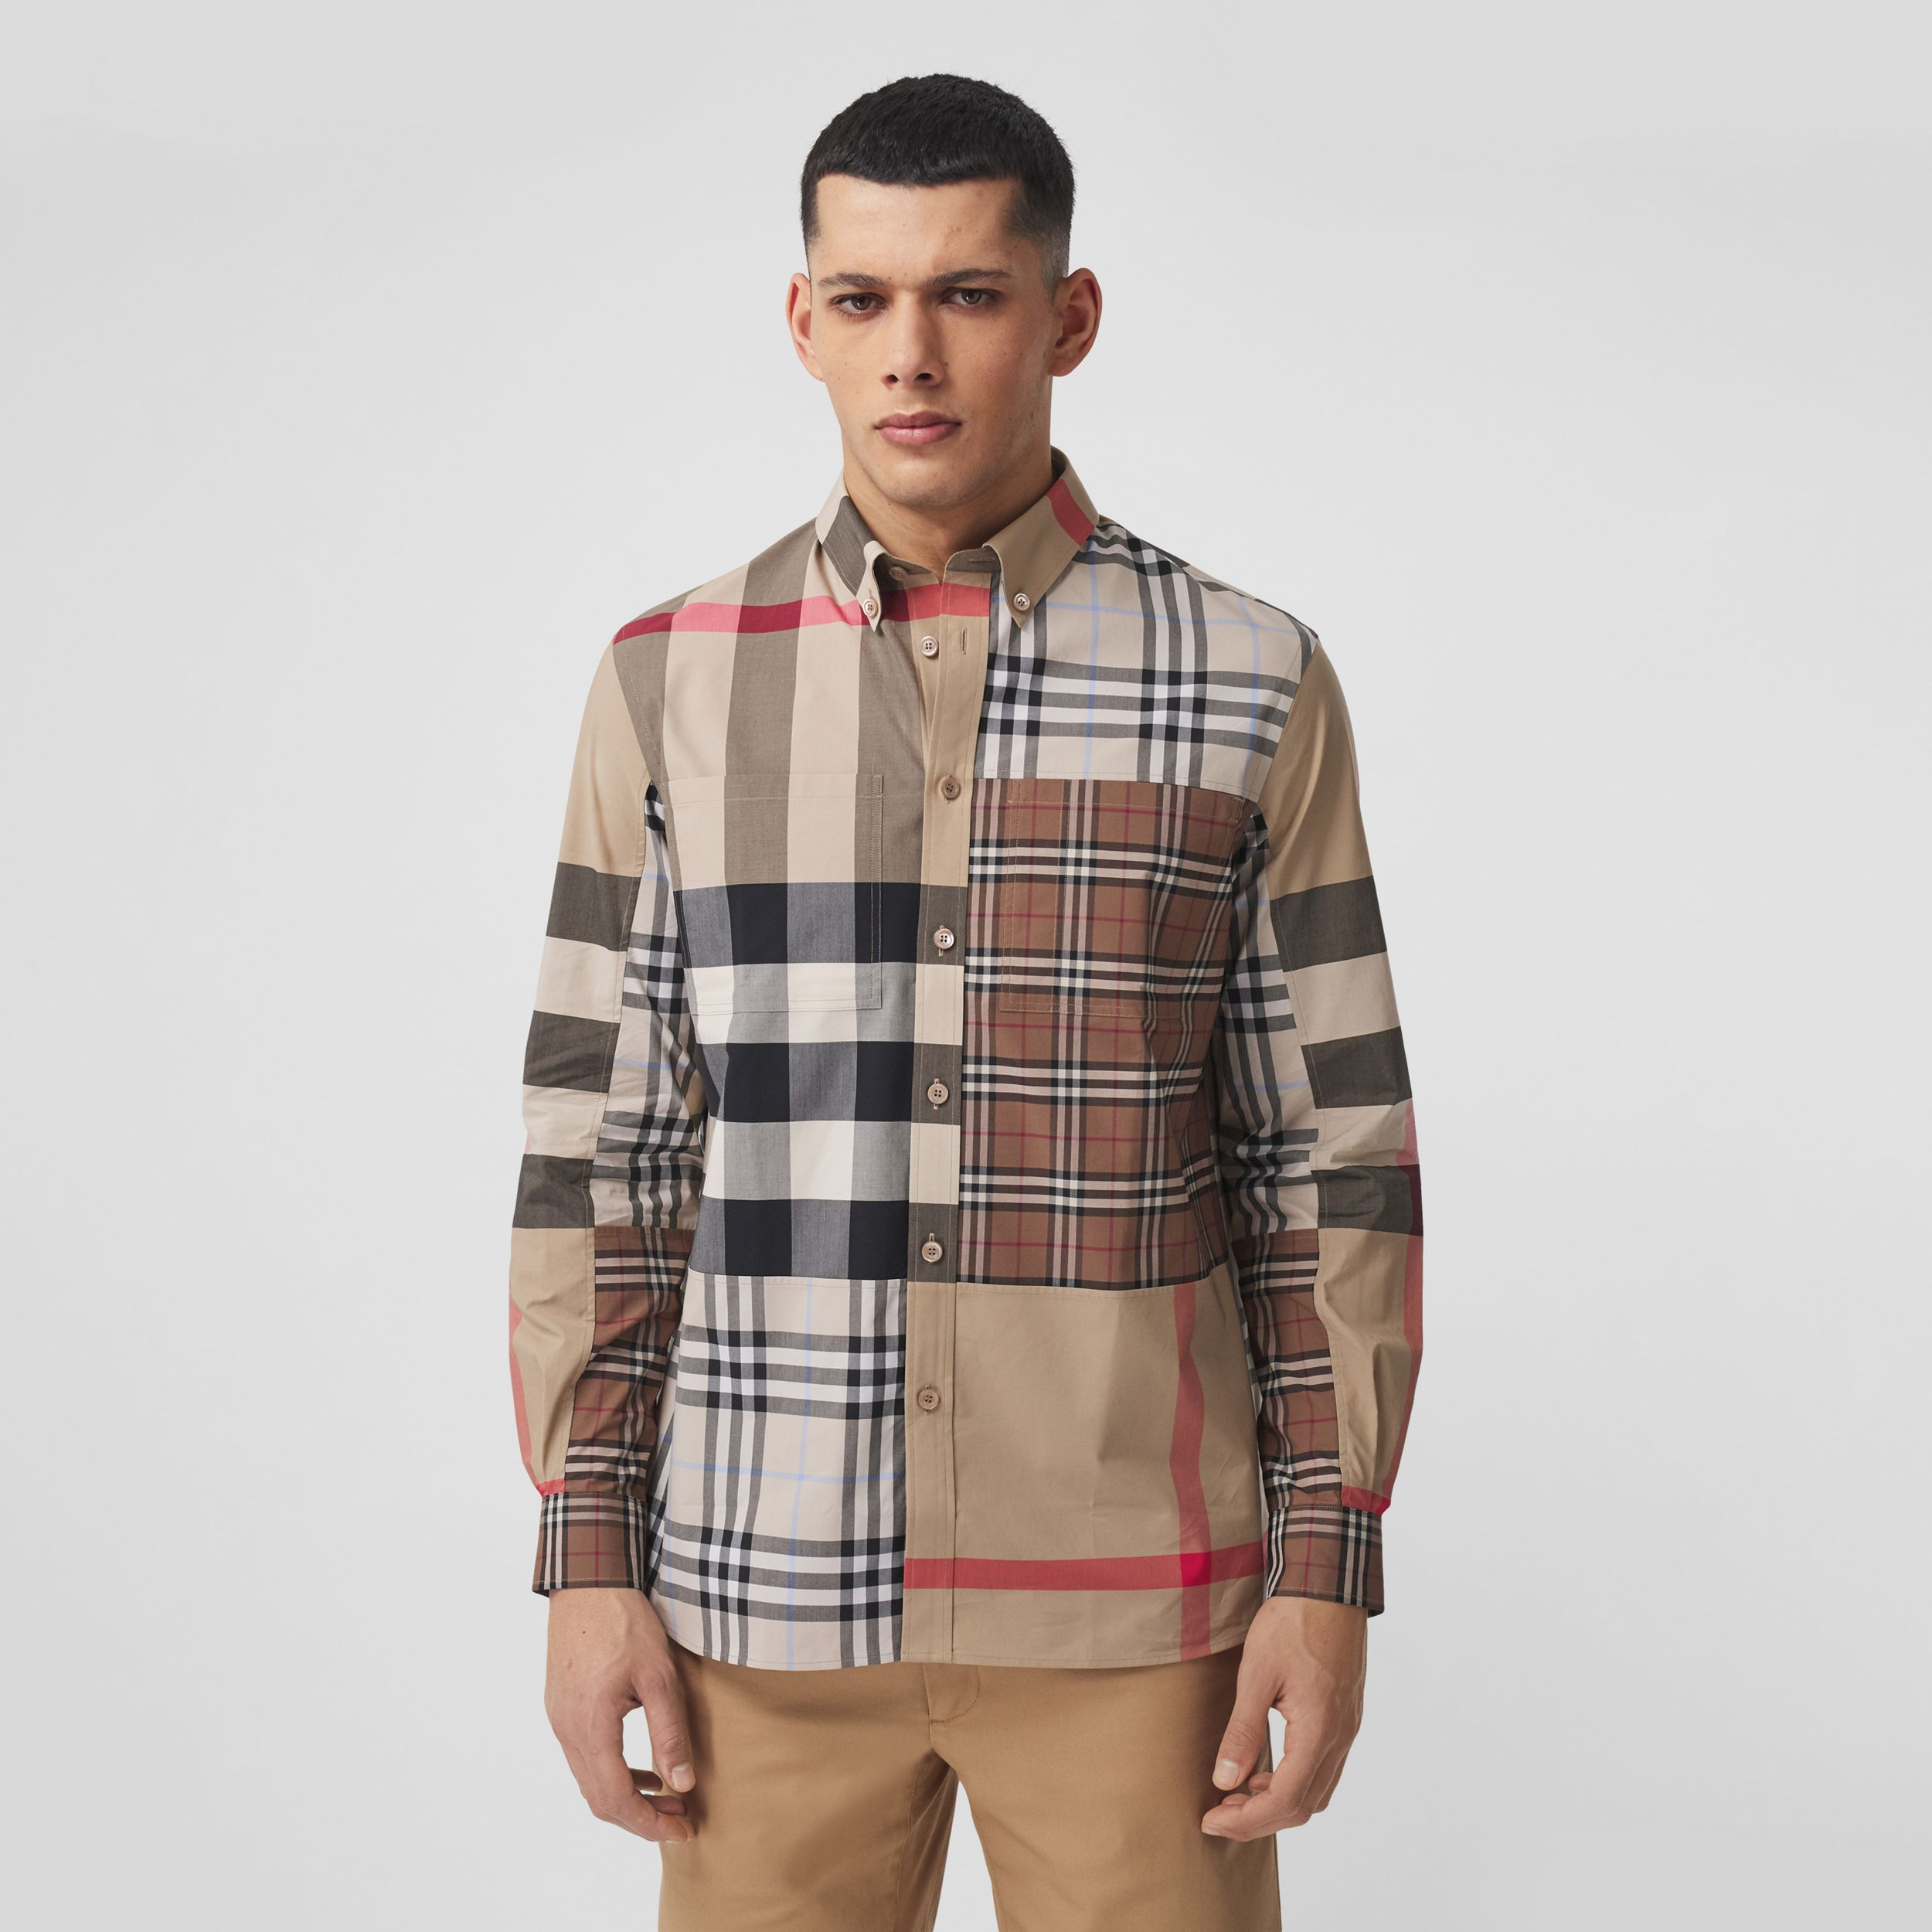 Contrast Check Stretch Cotton Poplin Shirt in Light Almond - Men | Burberry - 1